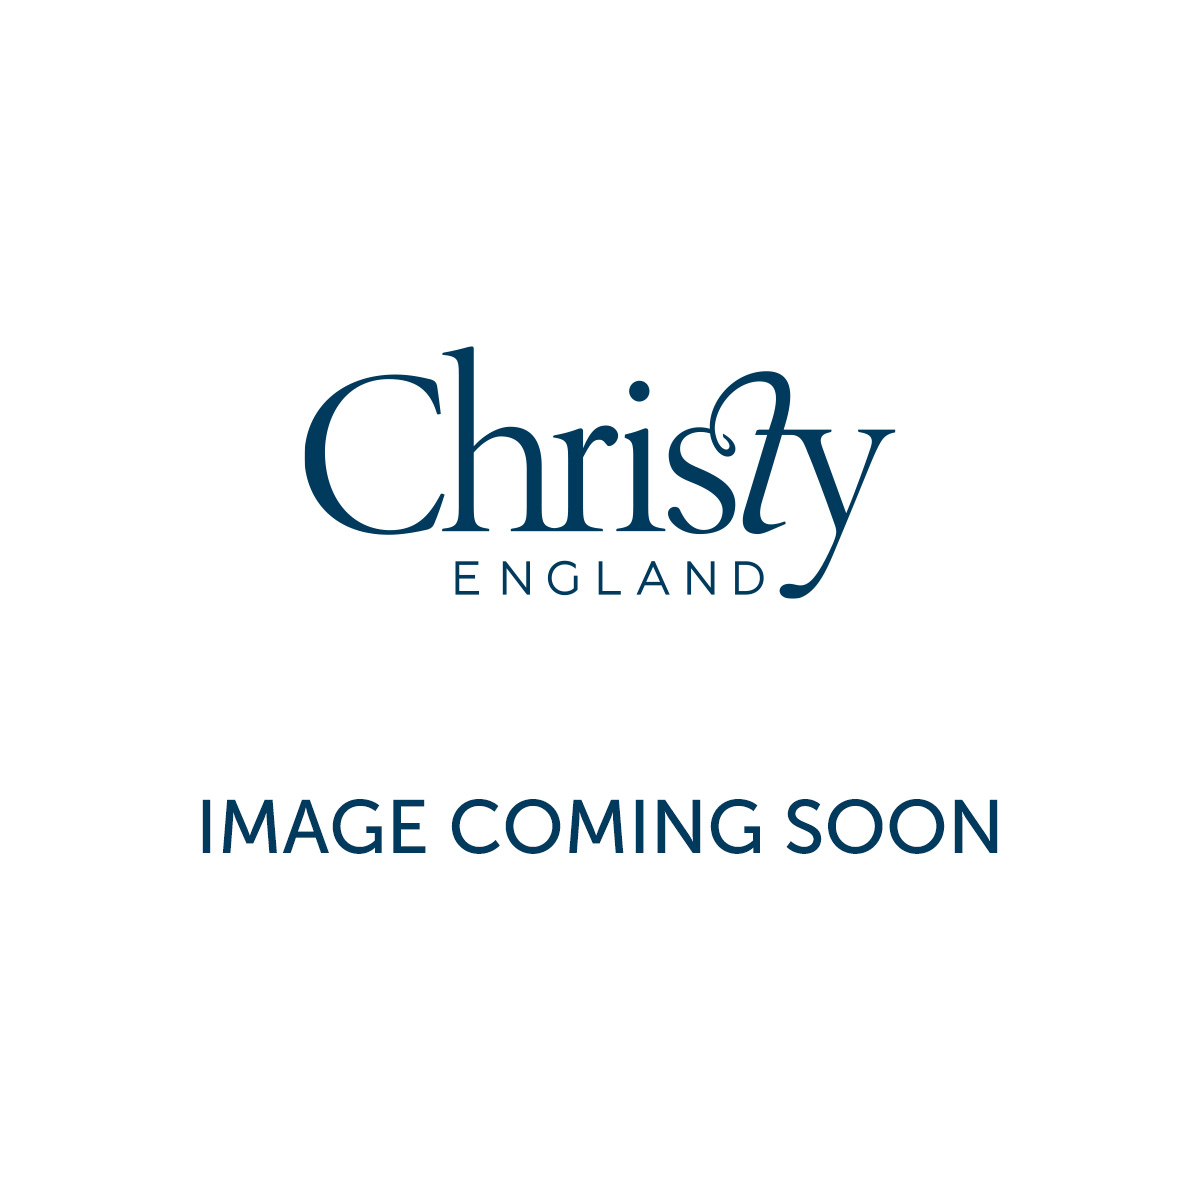 Christy Bude Bed Linen in Charcoal pillows